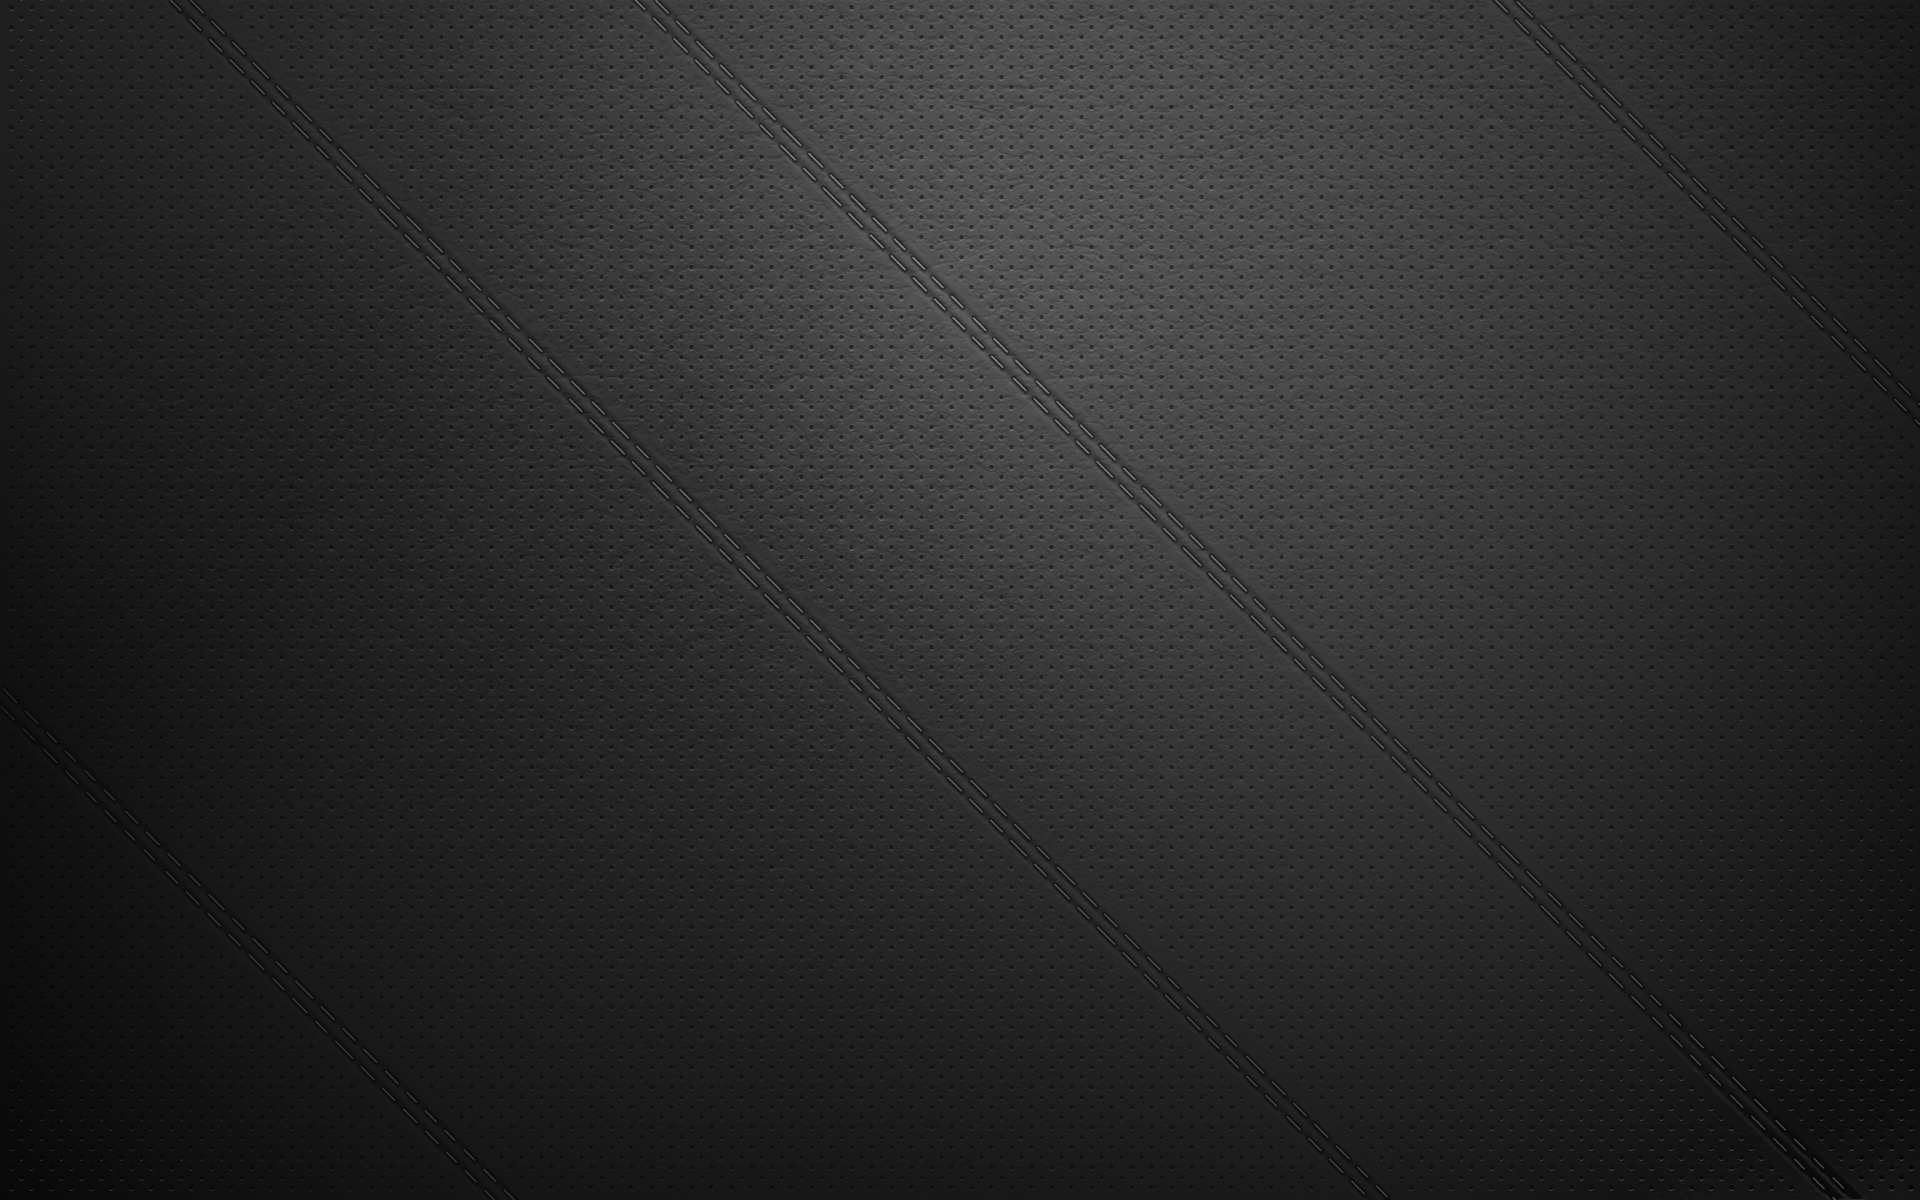 Plain Black Wallpaper 22 Wide Wallpaper   Hdblackwallpapercom 1920x1200